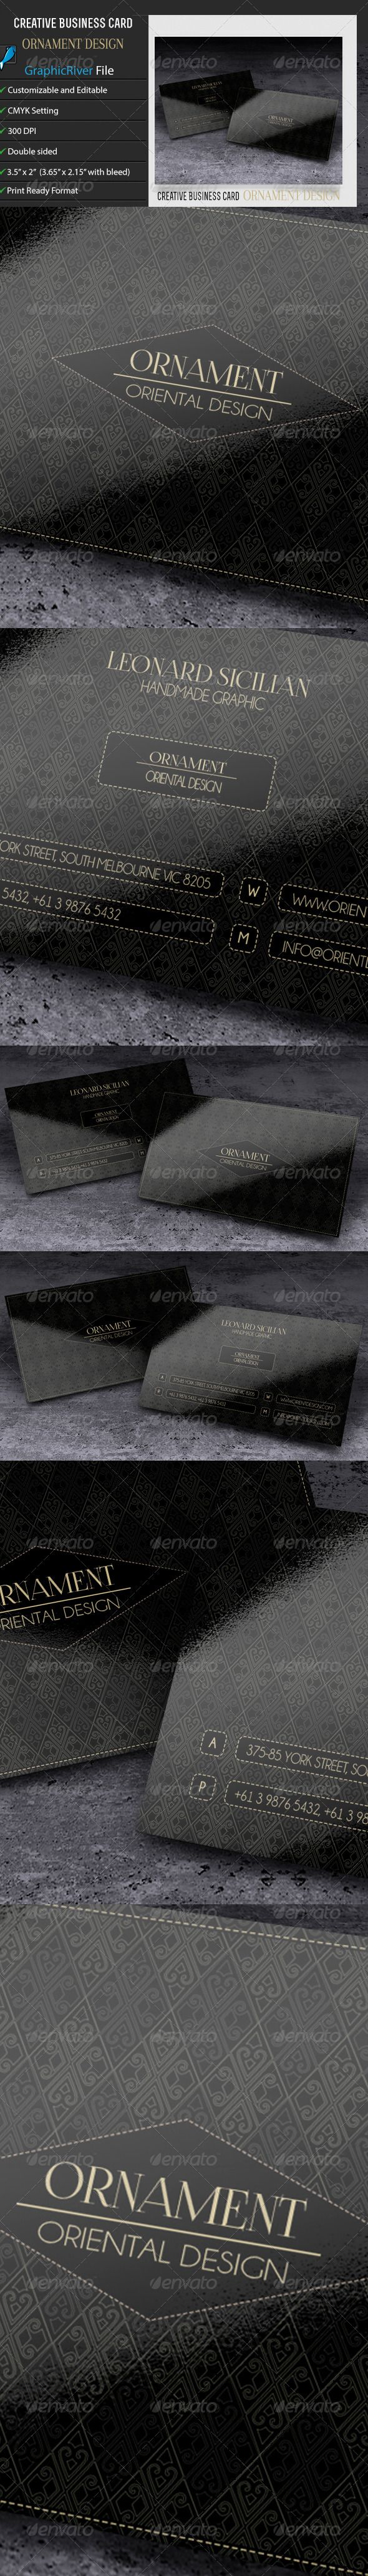 Creative Business Card – Ornament Design